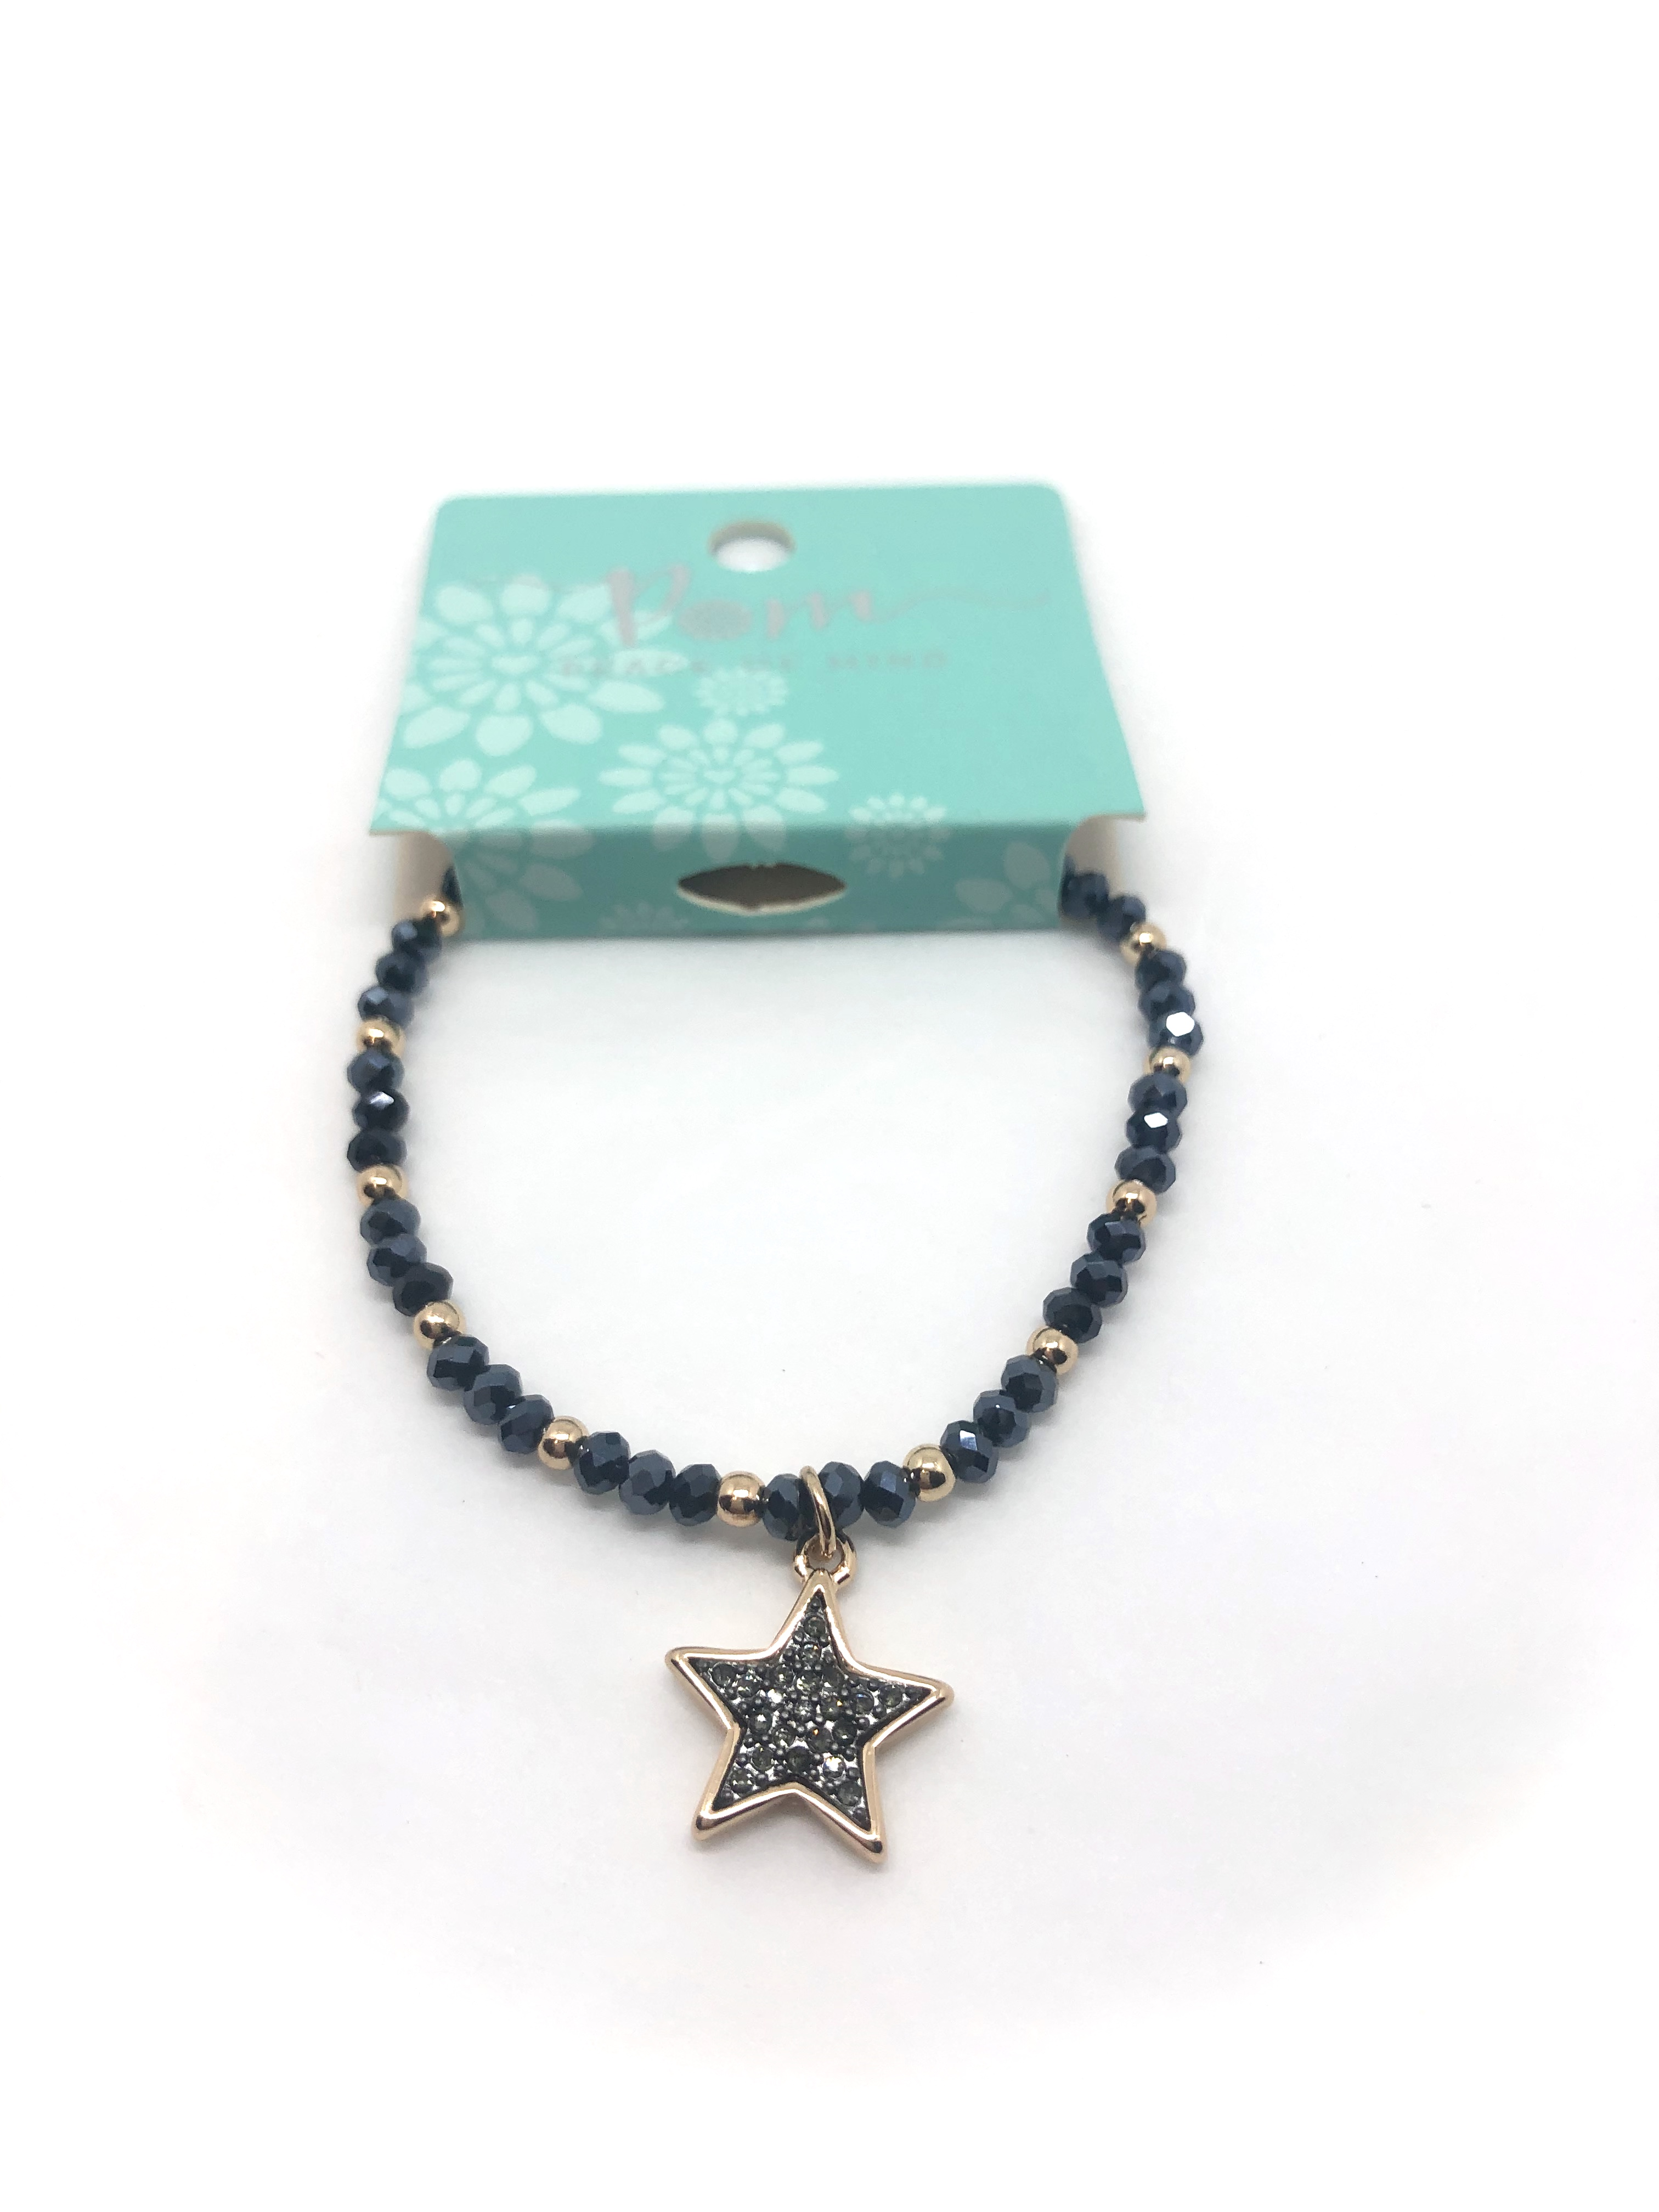 Bracelet (Pom) Golden Mixed Bead Black Star